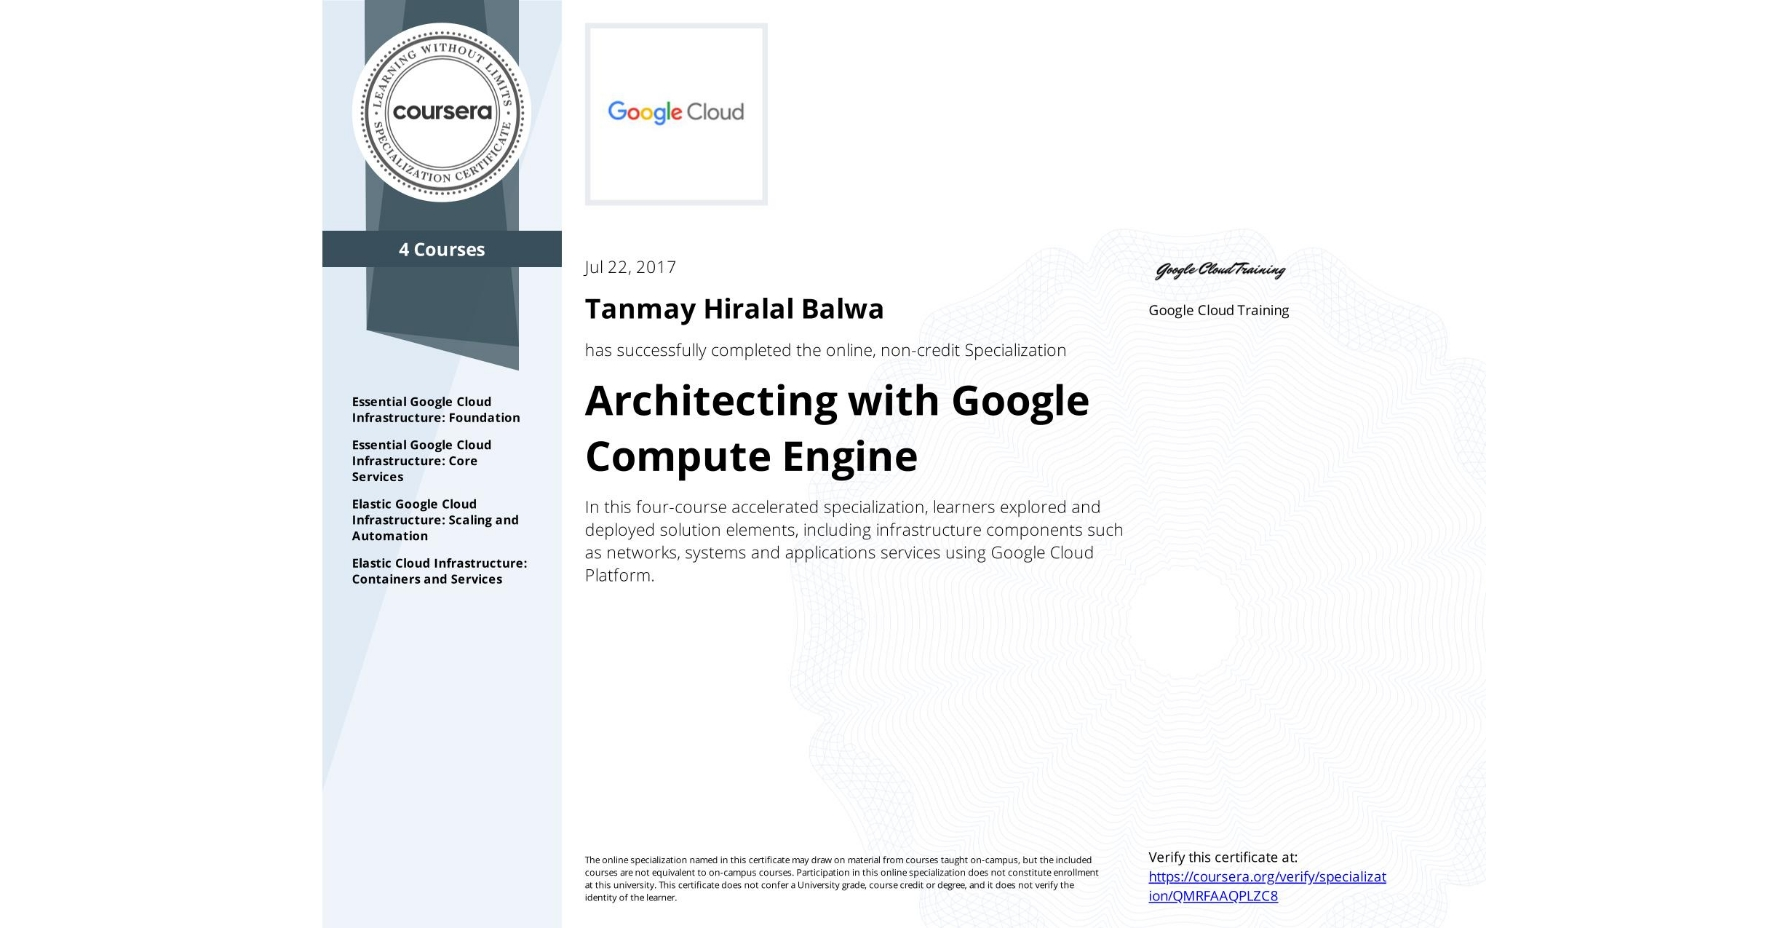 View certificate for Tanmay Hiralal Balwa, Architecting with Google Compute Engine, offered through Coursera. In this four-course accelerated specialization, learners explored and deployed solution elements, including infrastructure components such as networks, systems and applications services using Google Cloud Platform.